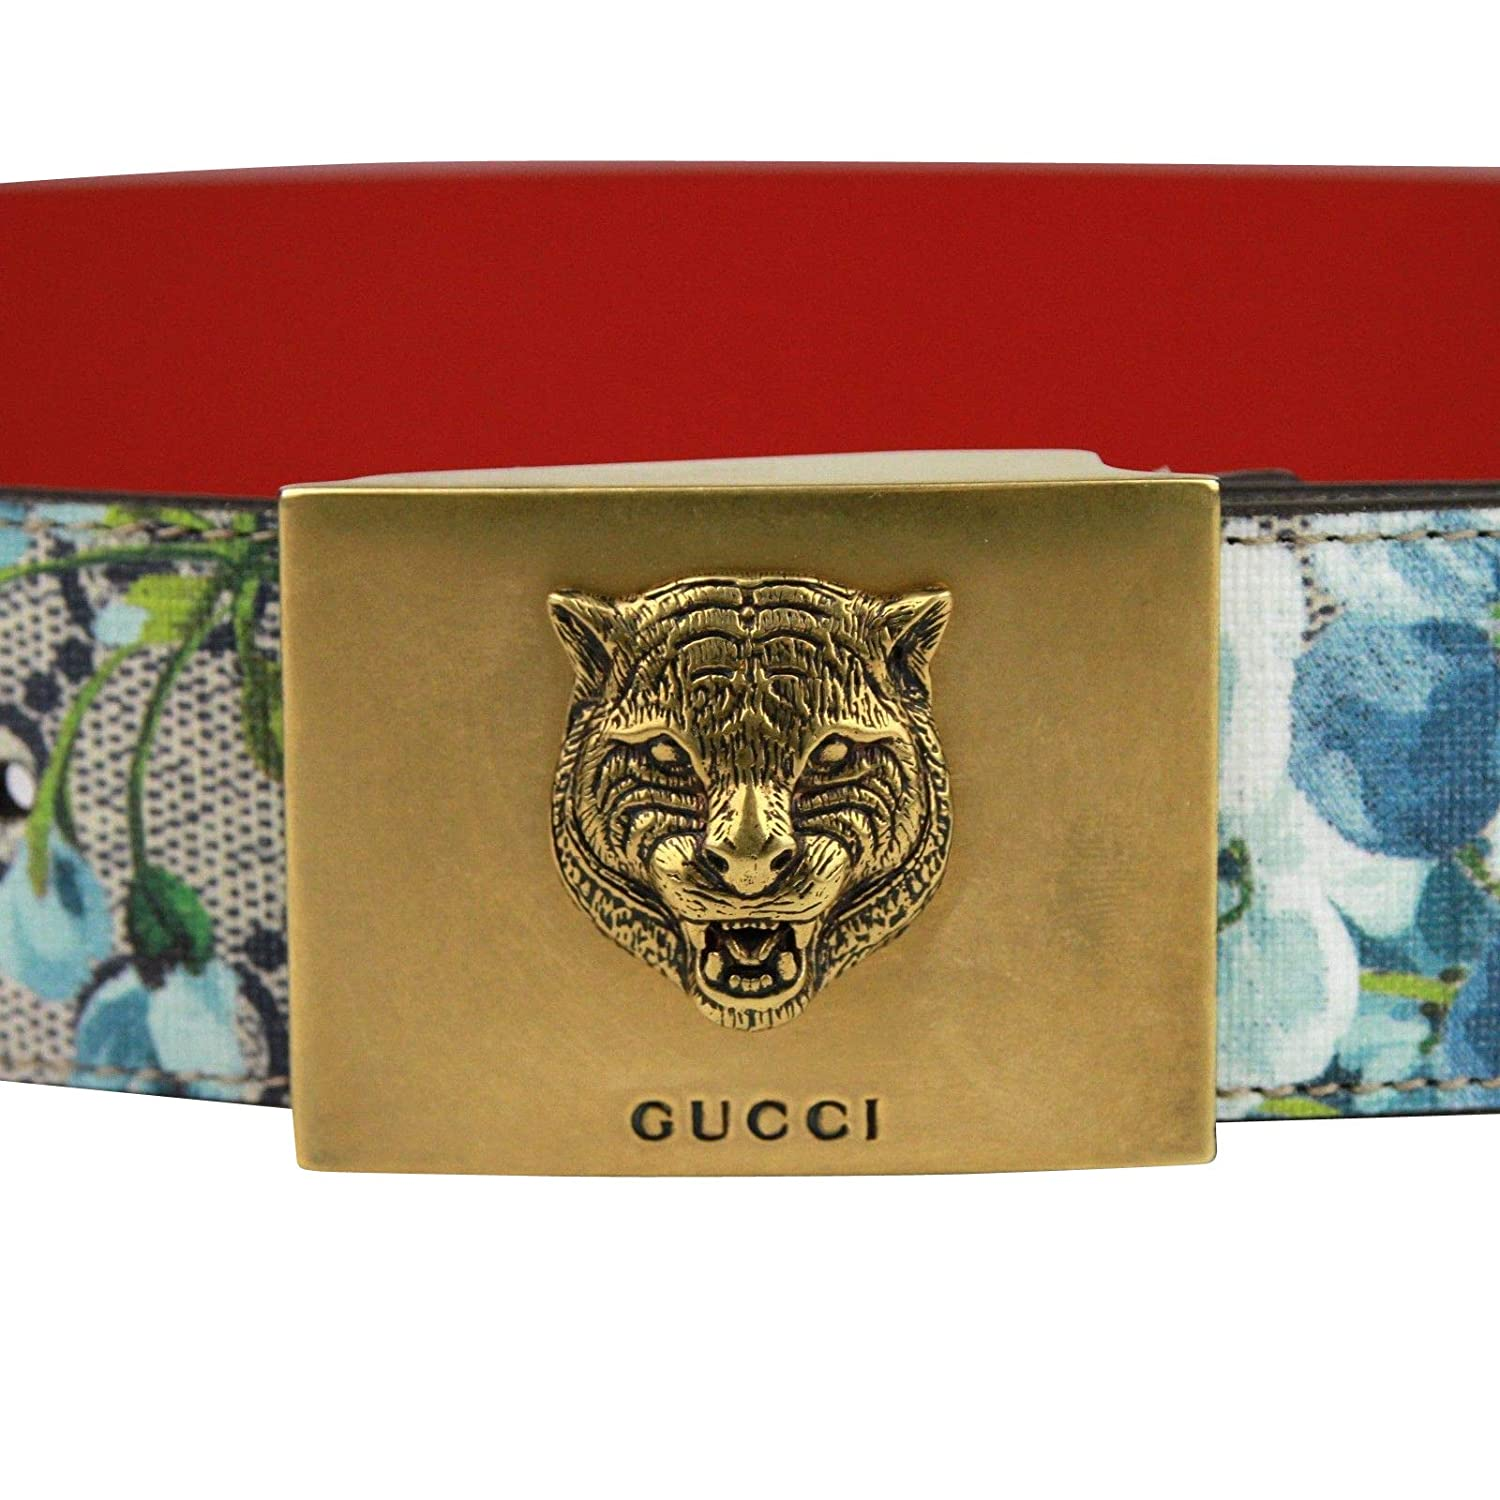 55e2a2929bf Amazon.com  Gucci Unisex Gold Tiger Blue GG Supreme Coated Canvas Bloom  Print Belt Buckle 434559 8492 (80 32)  Clothing